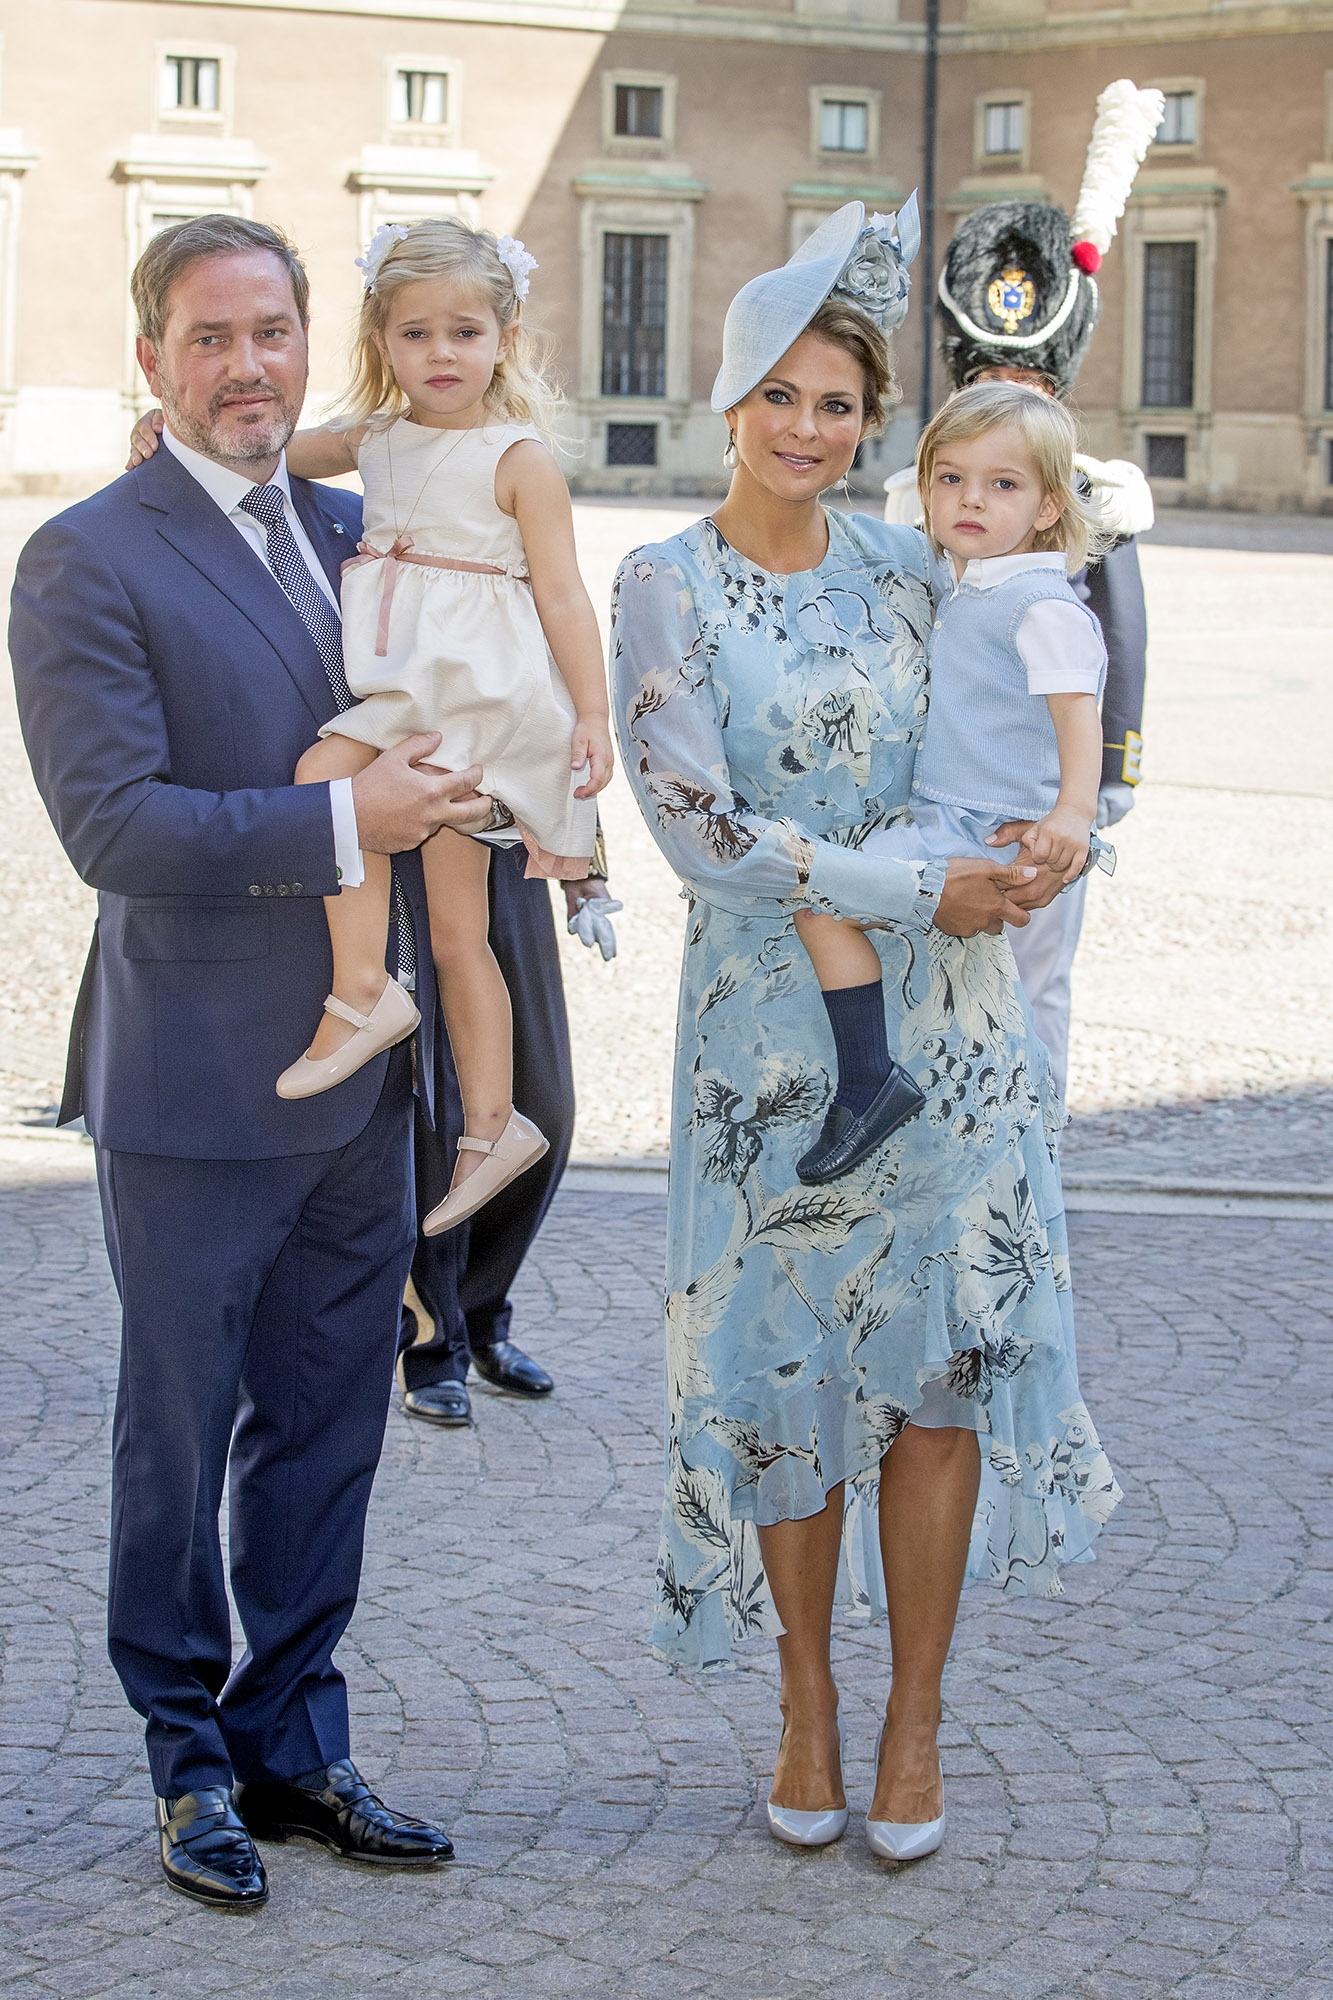 See the First Photo of the New Swedish Royal Baby Princess! gettyimages-814218100